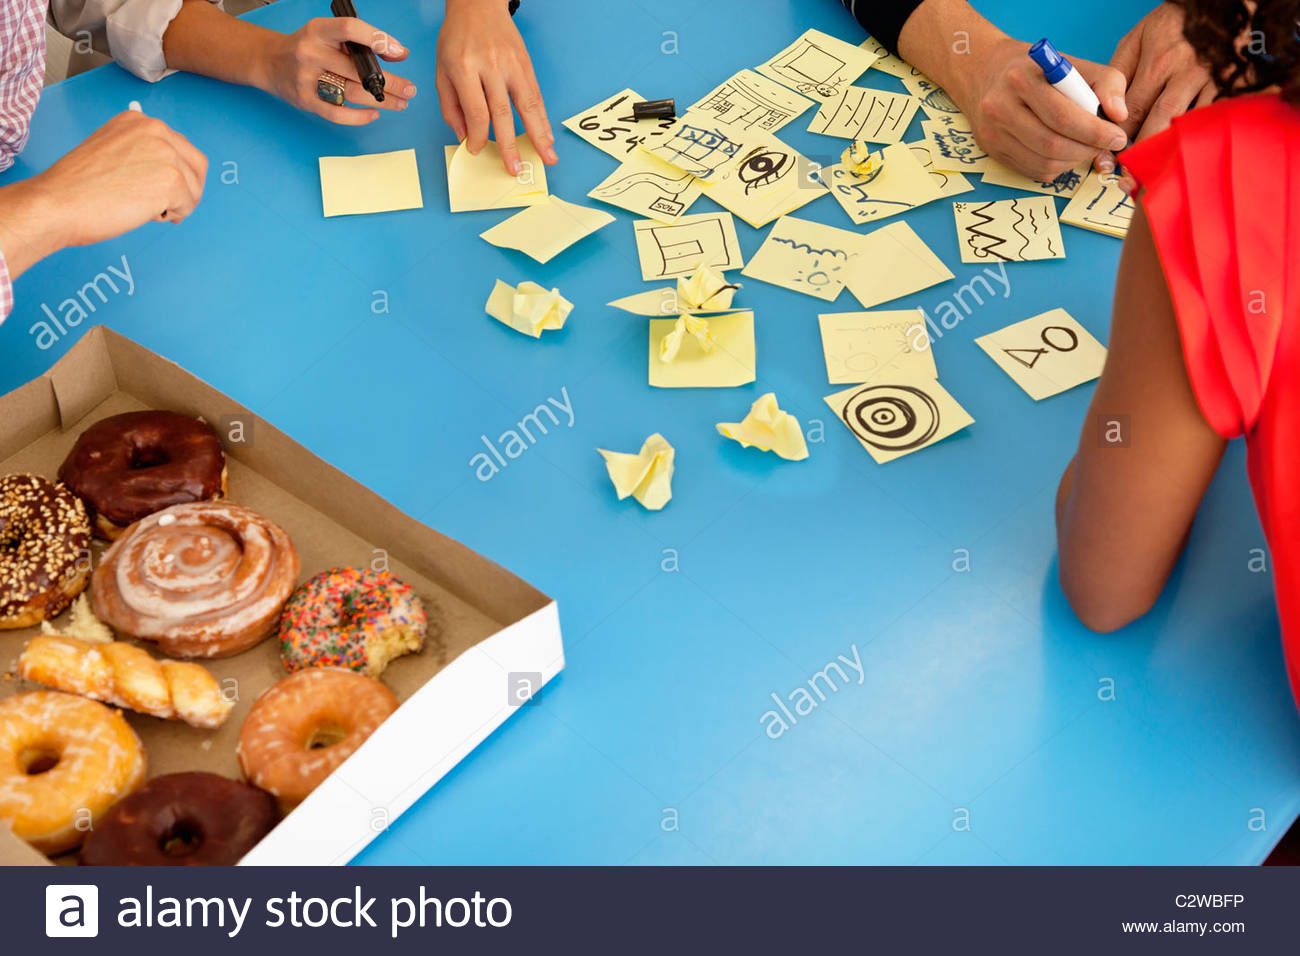 Business people with donuts writing on adhesive notes - Stock Image